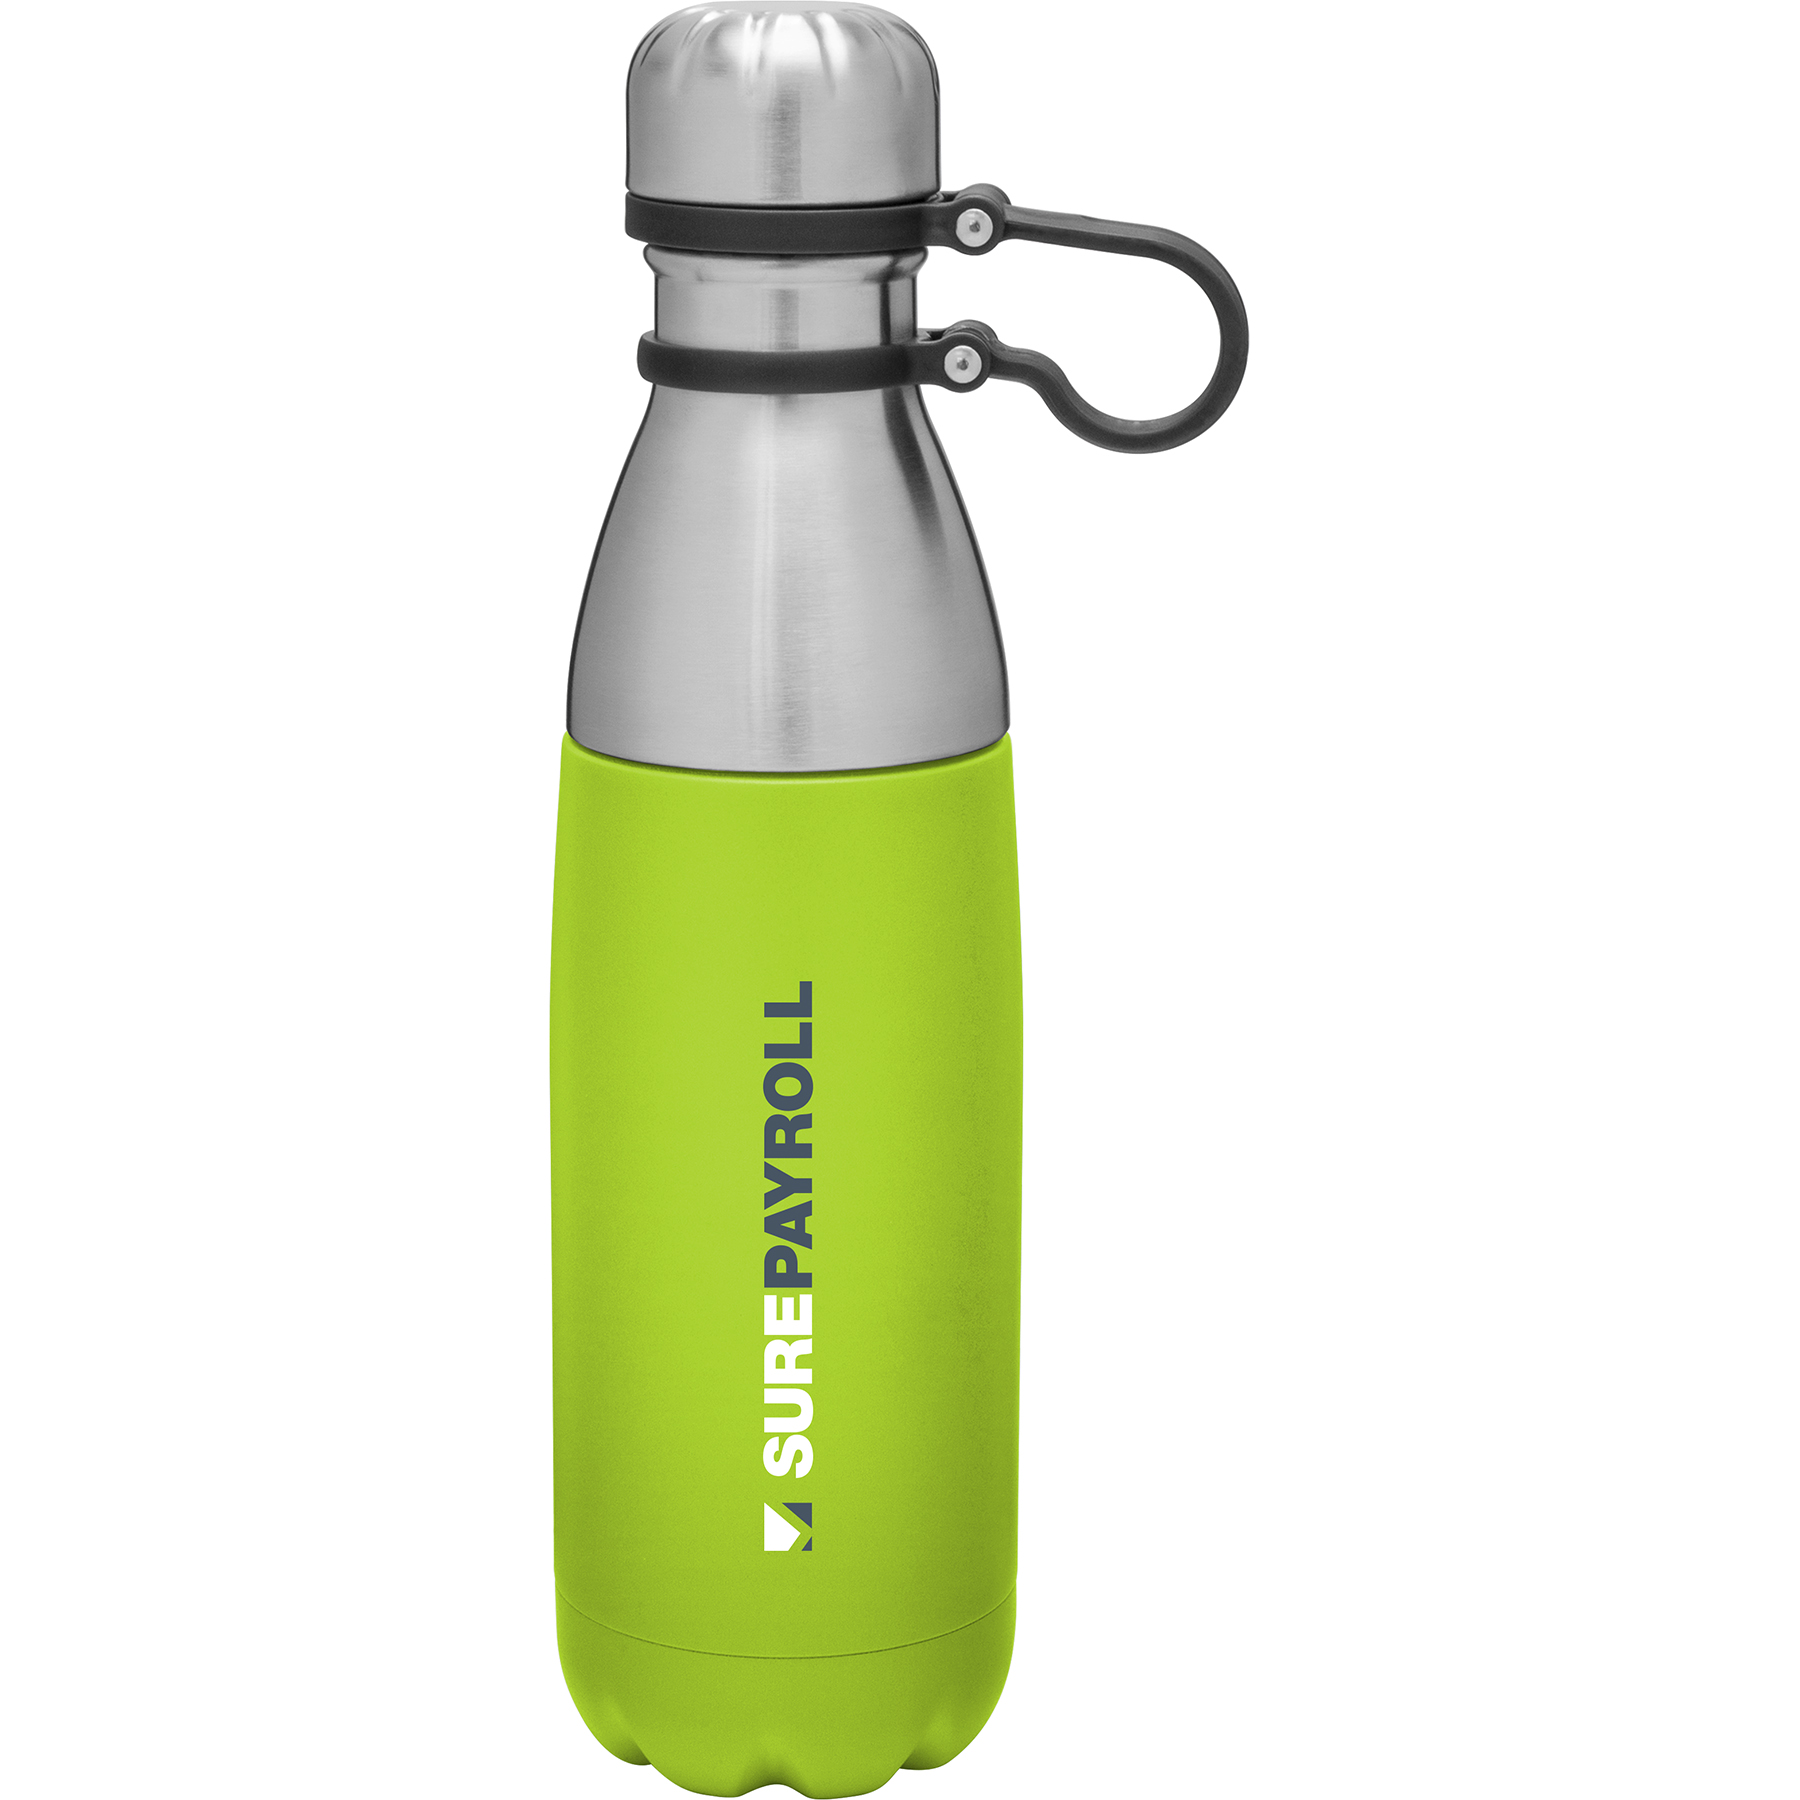 16.9 Oz H2go Sync Thermal Bottle - Matte Lime